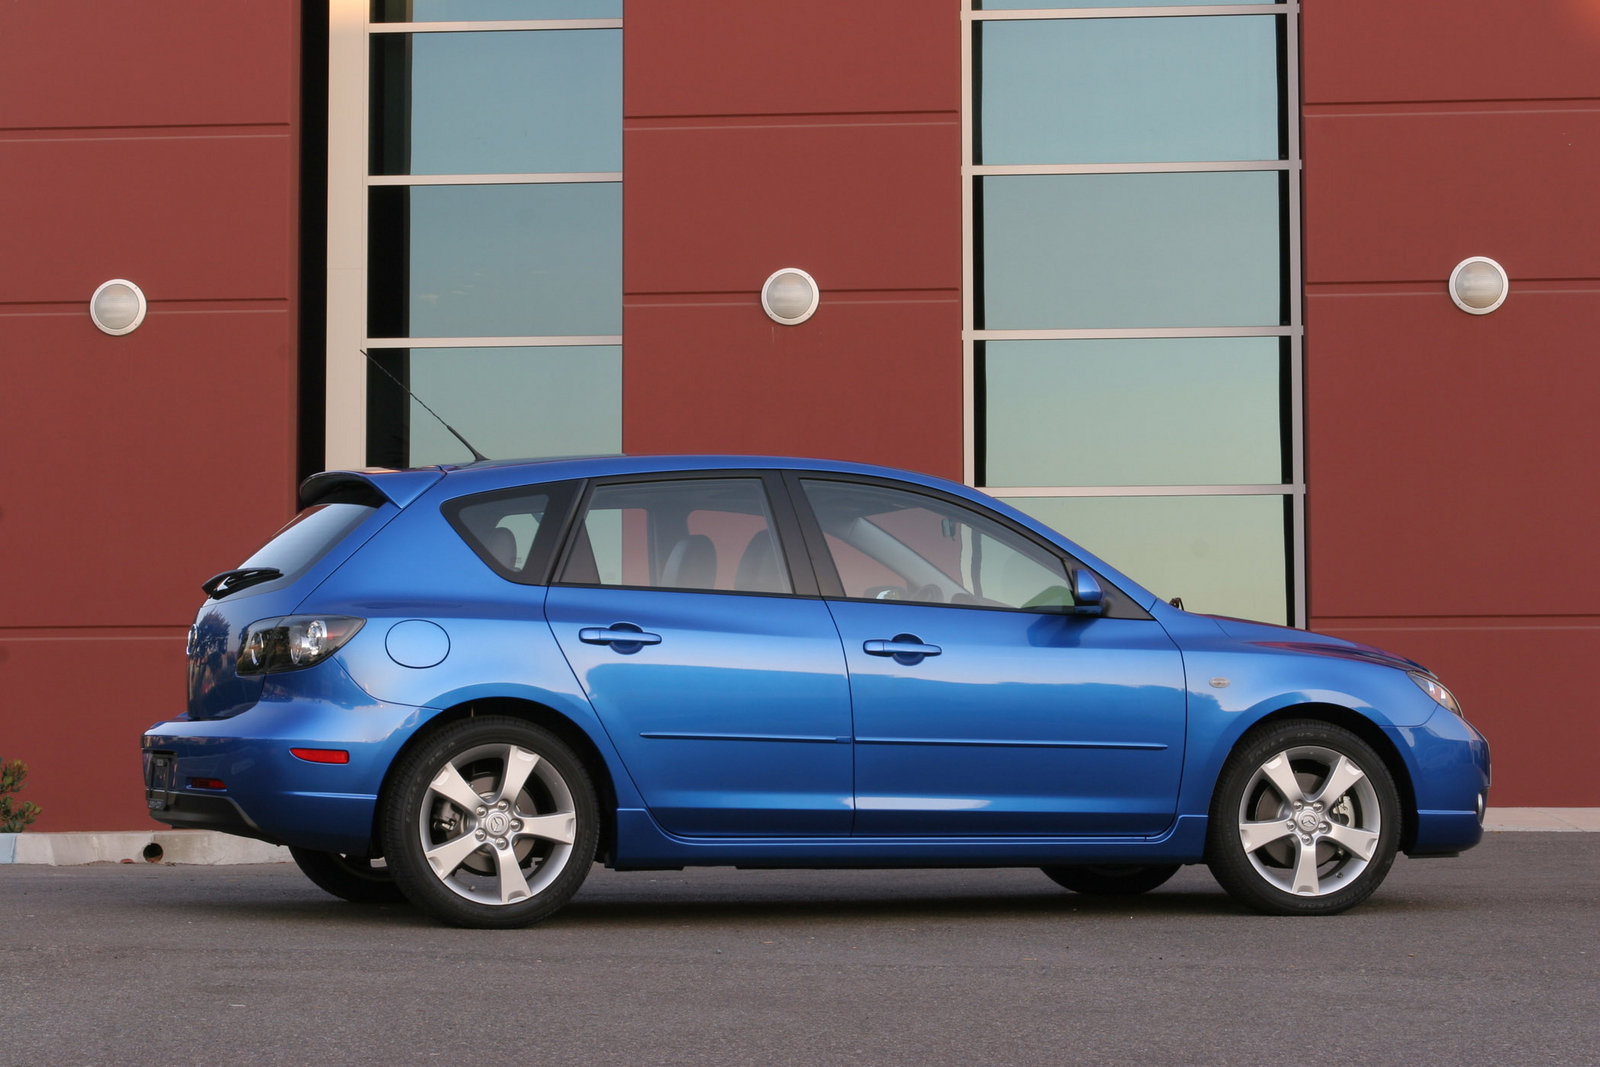 gallery: 2007 Mazda3 MPS